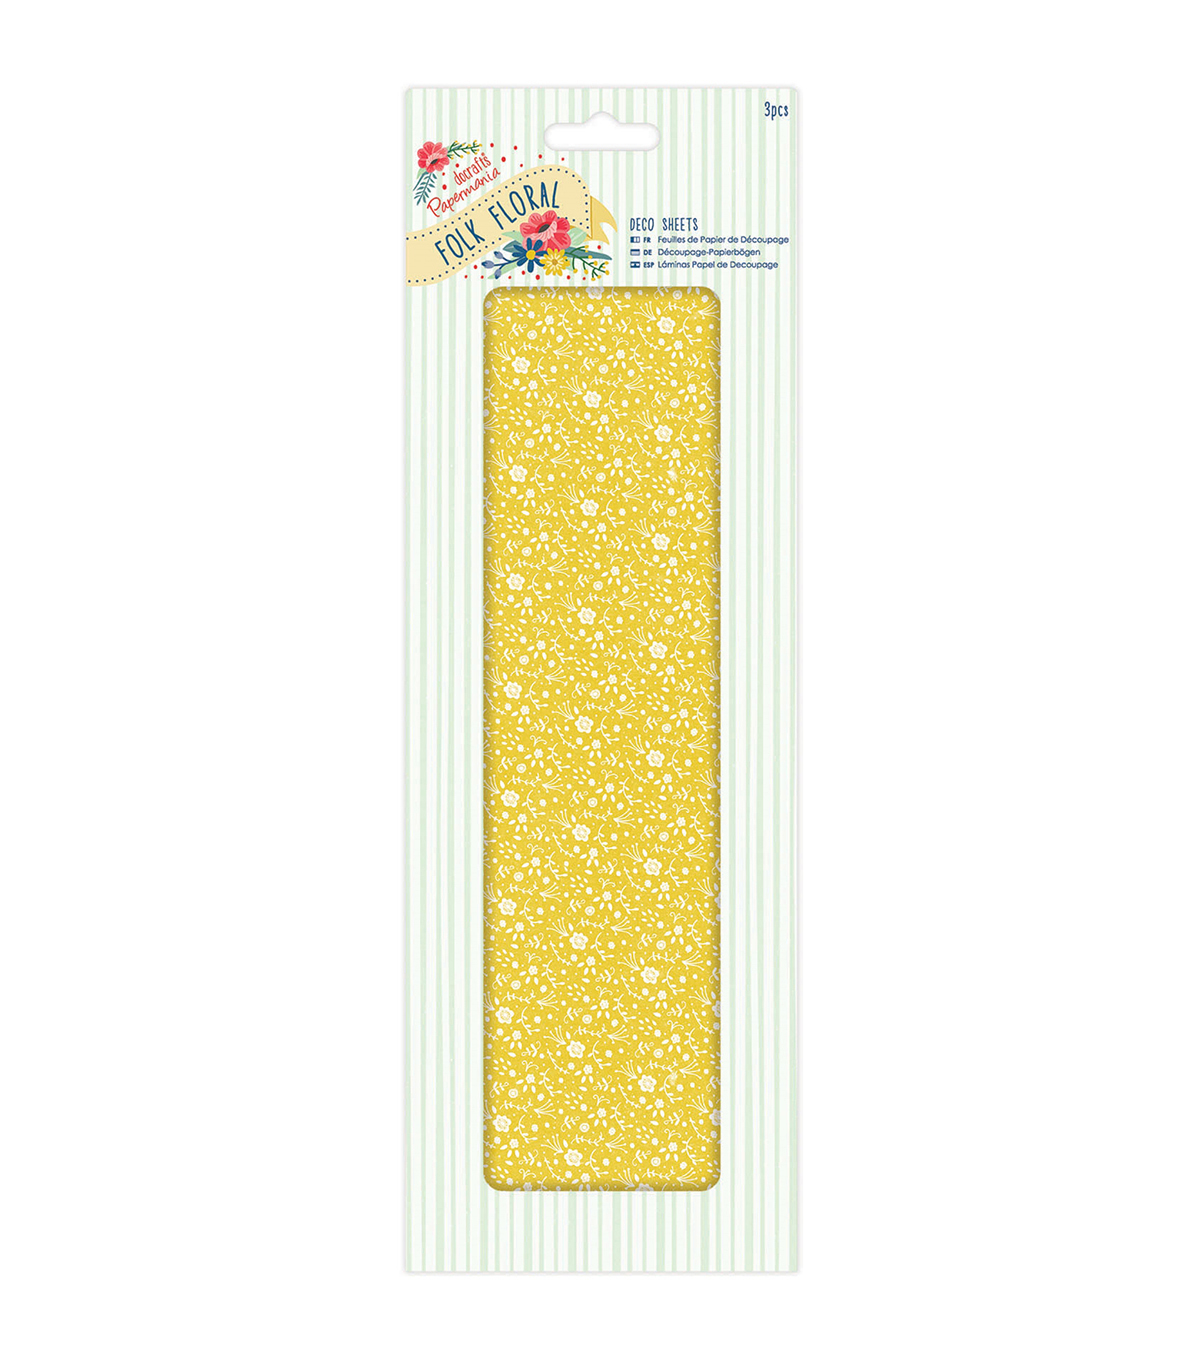 Papermania Folk Floral 3ct Deco Sheets-Yellow Floral